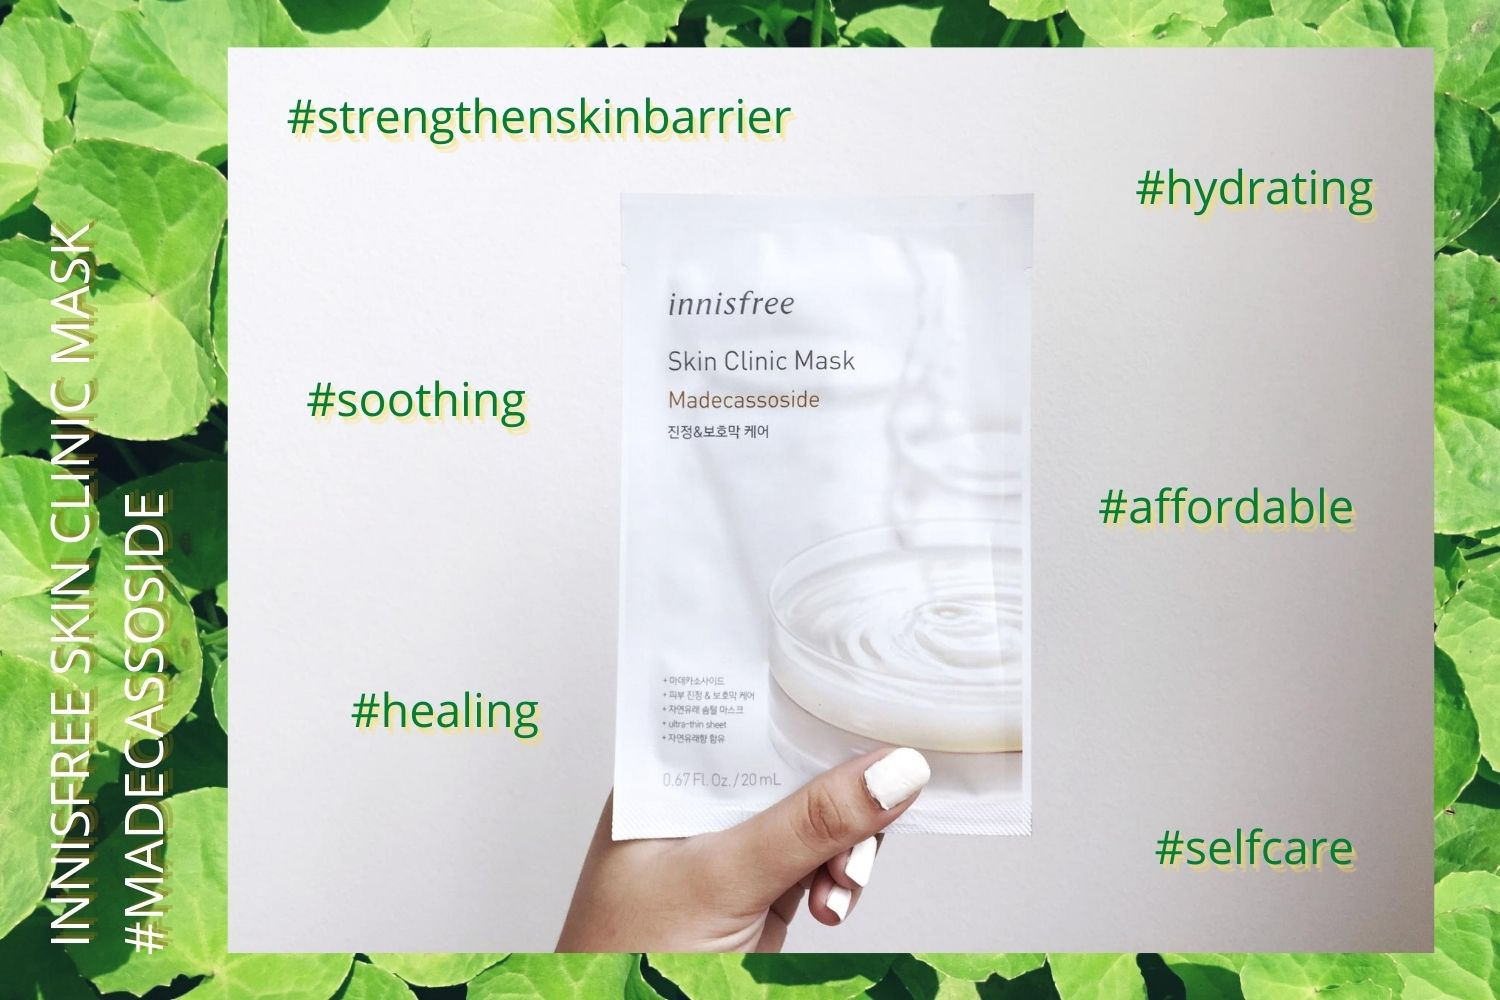 REVIEW | Healing with Innisfree Skin Clinic Madecassoside Mask